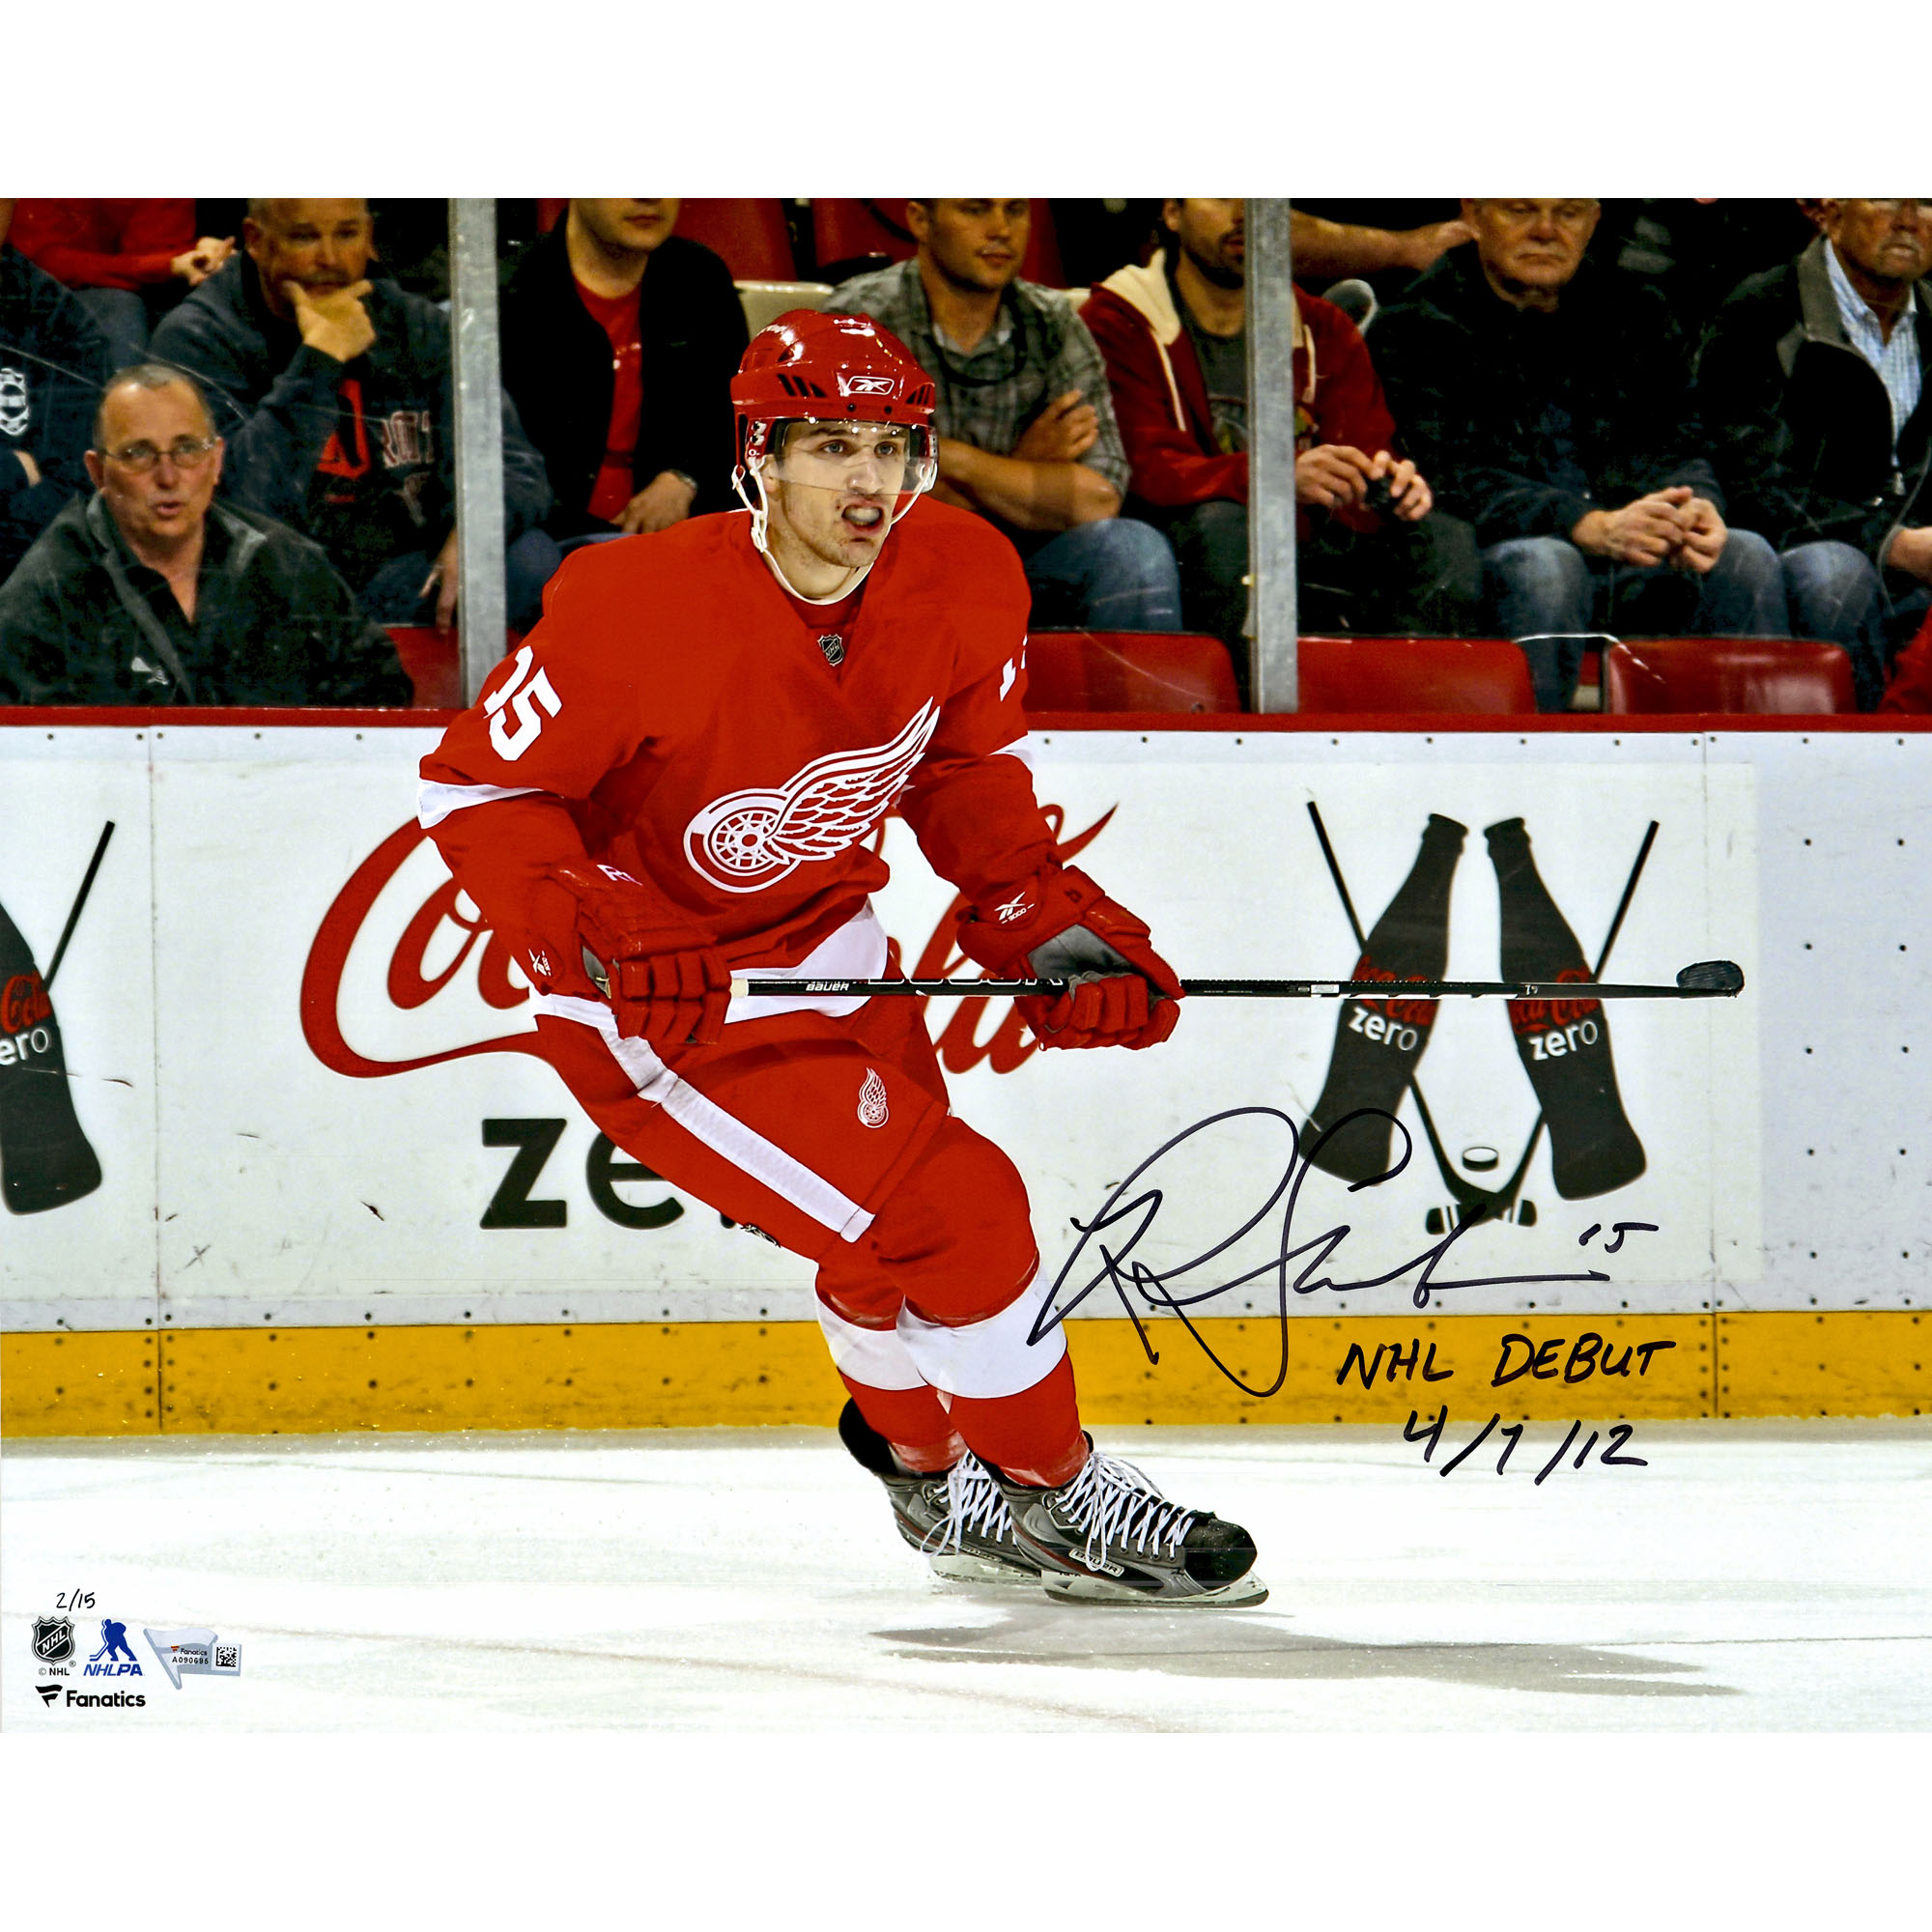 """Riley Sheahan Detroit Red Wings Fanatics Authentic Autographed 16"""" x 20"""" Debut Skating Photograph with NHL... by Fanatics Authentic"""